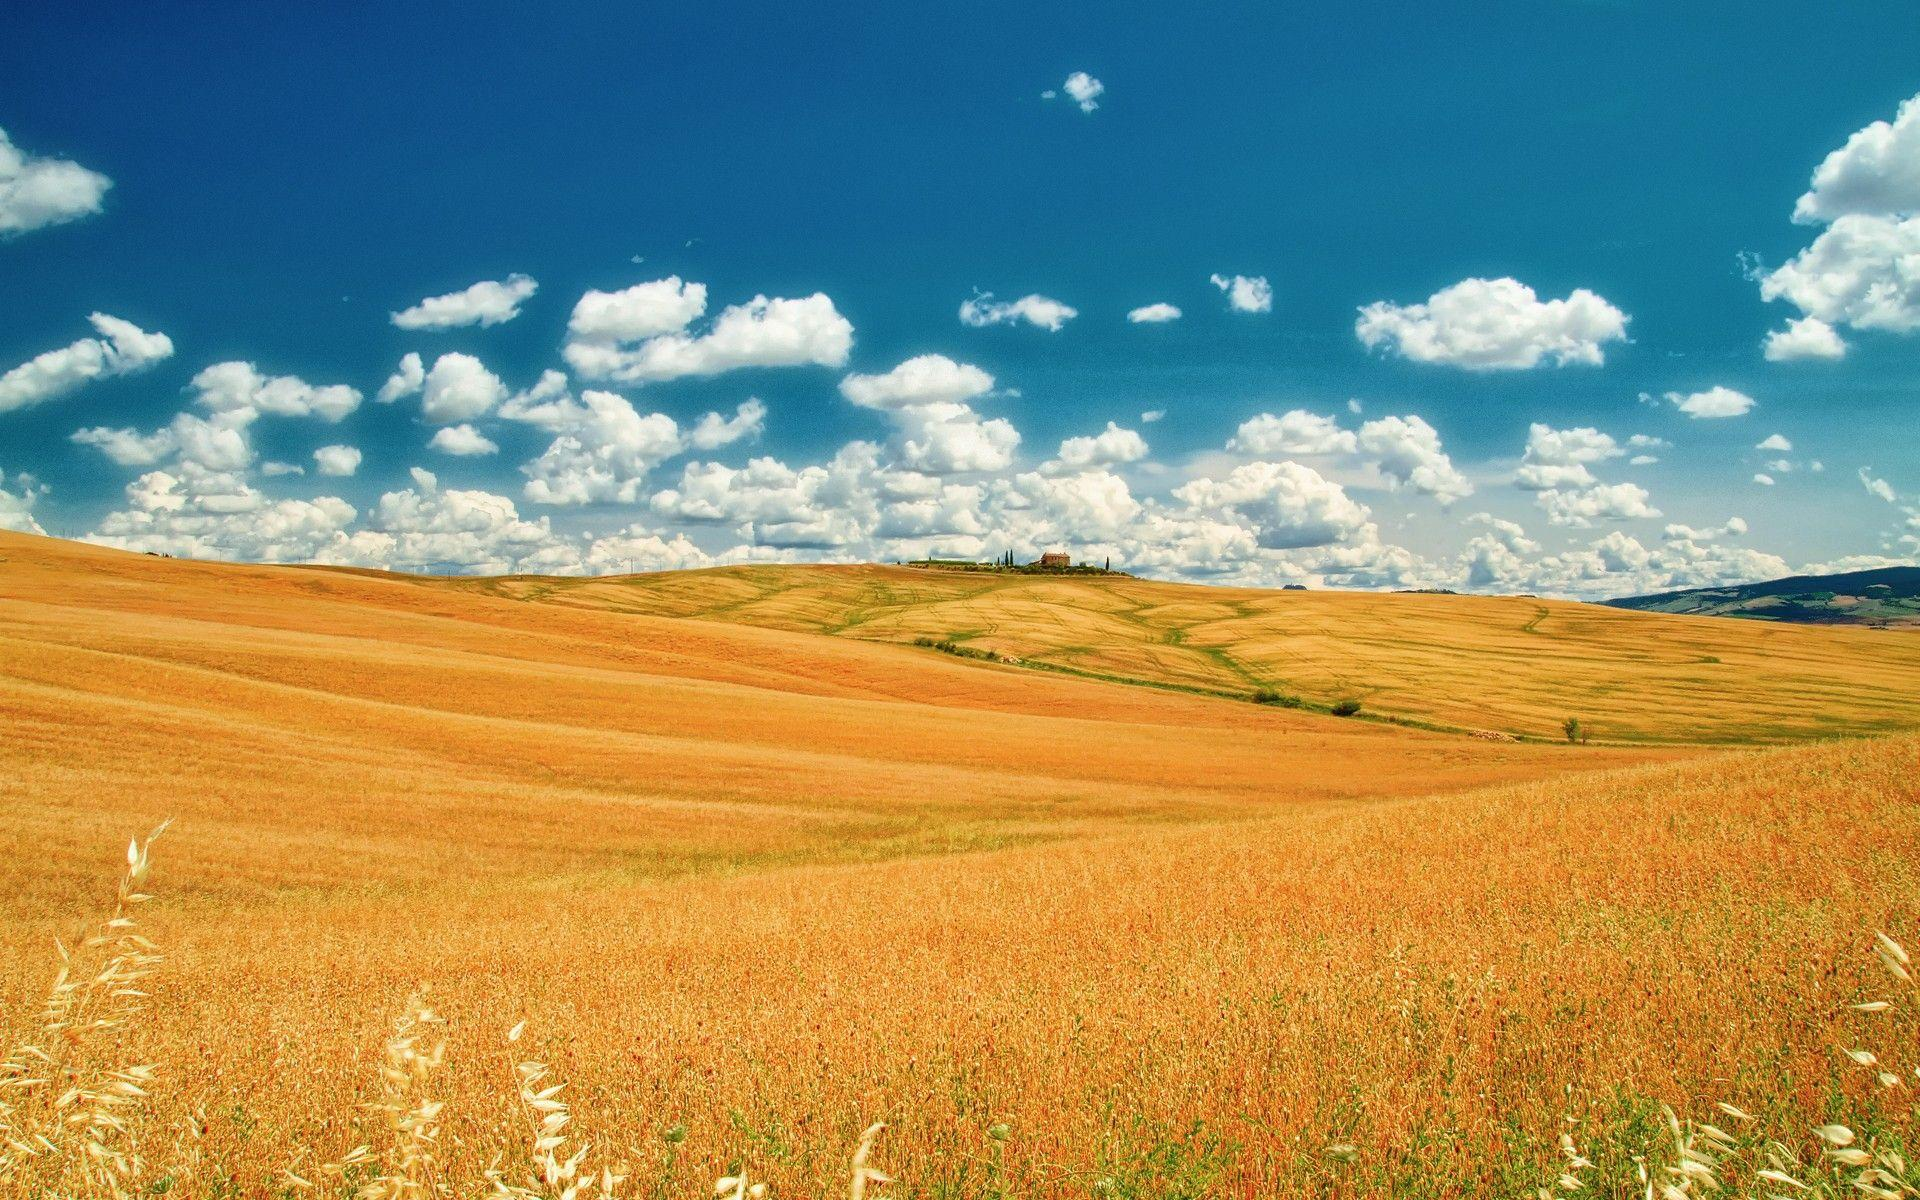 Tuscan Prairie Wallpapers HD Charming Wallpaper 240x400px wallpaper